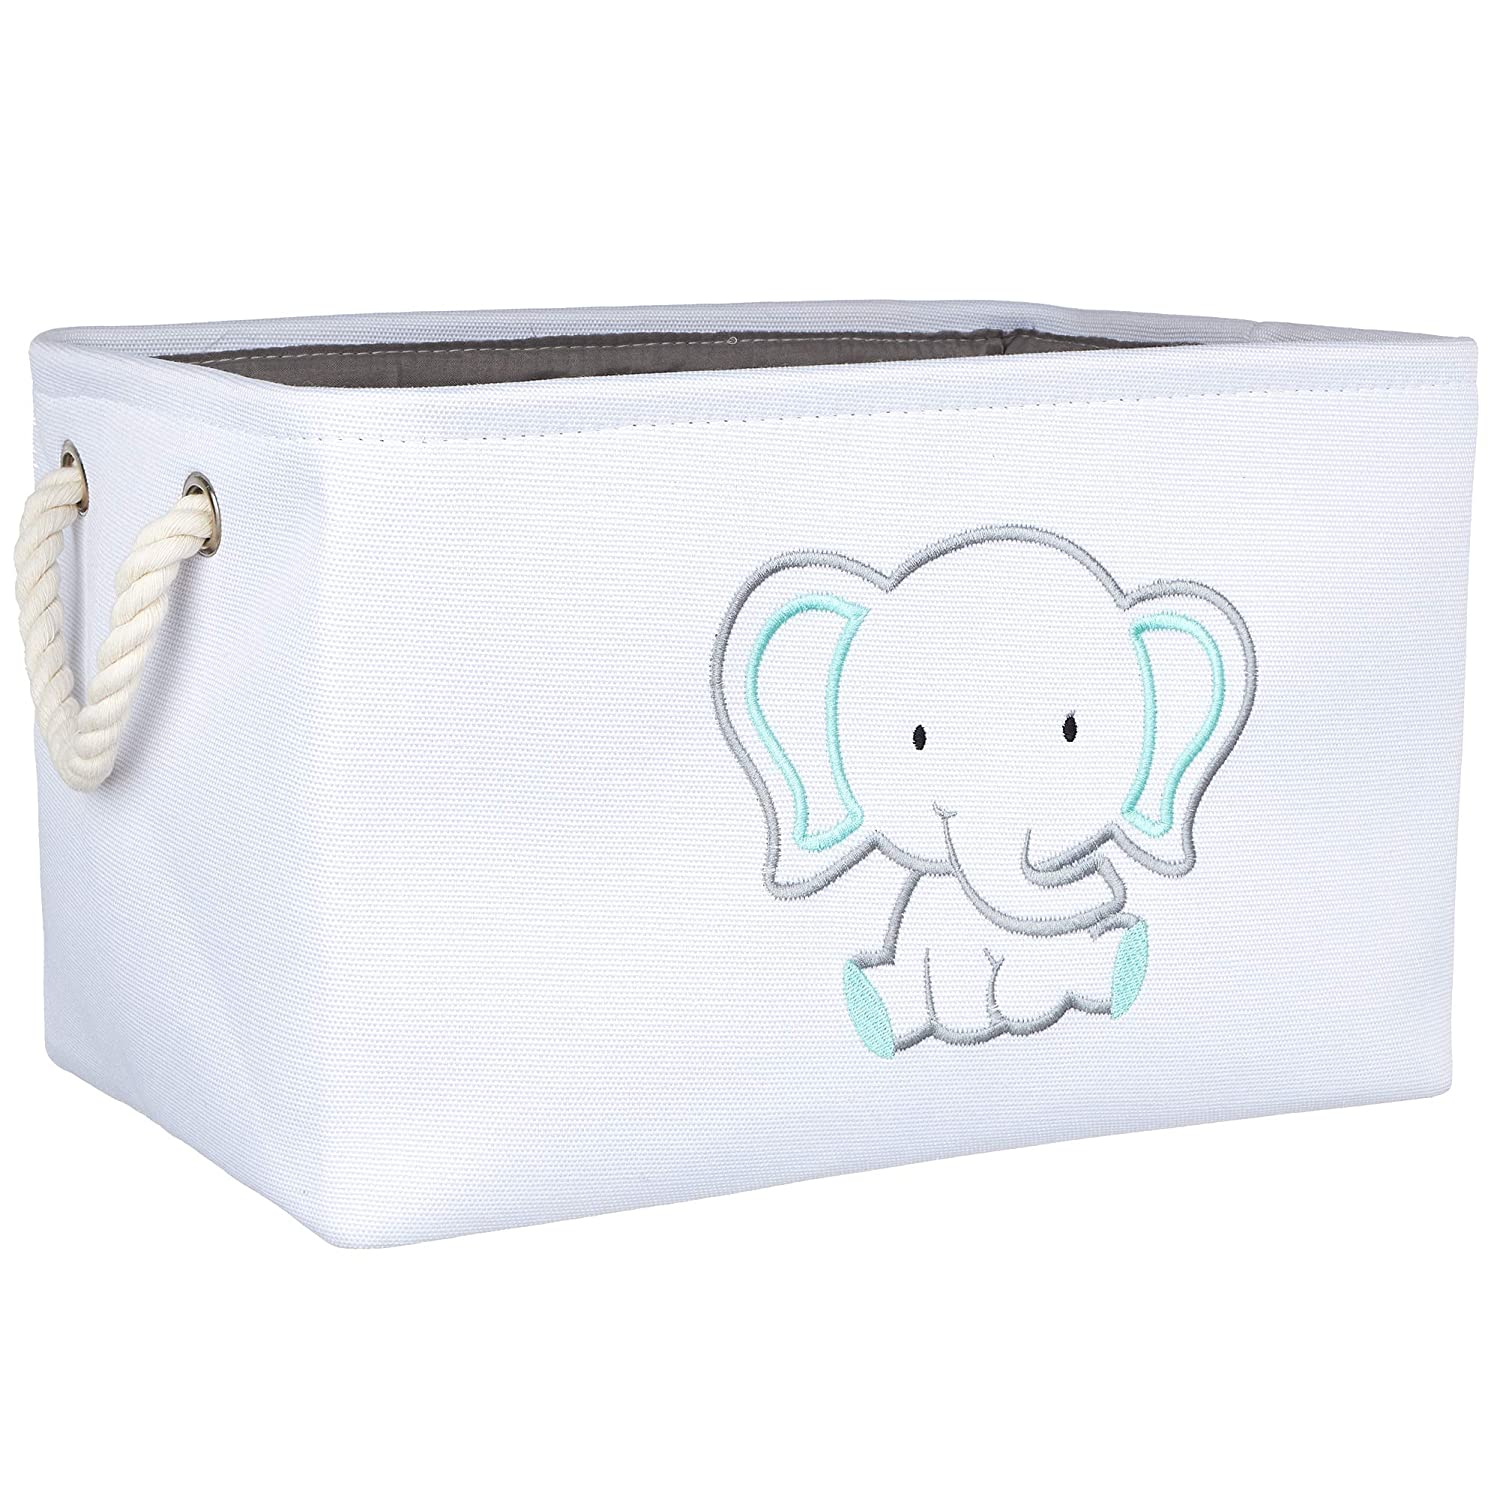 APPLE PIE ORDER Storage Basket with Embroidery, Foldable Animal Toy Storage Bins/Cube/Box/Organizer for Kids, Boys and Girls Room, Baby & Nursery. (Elephant)